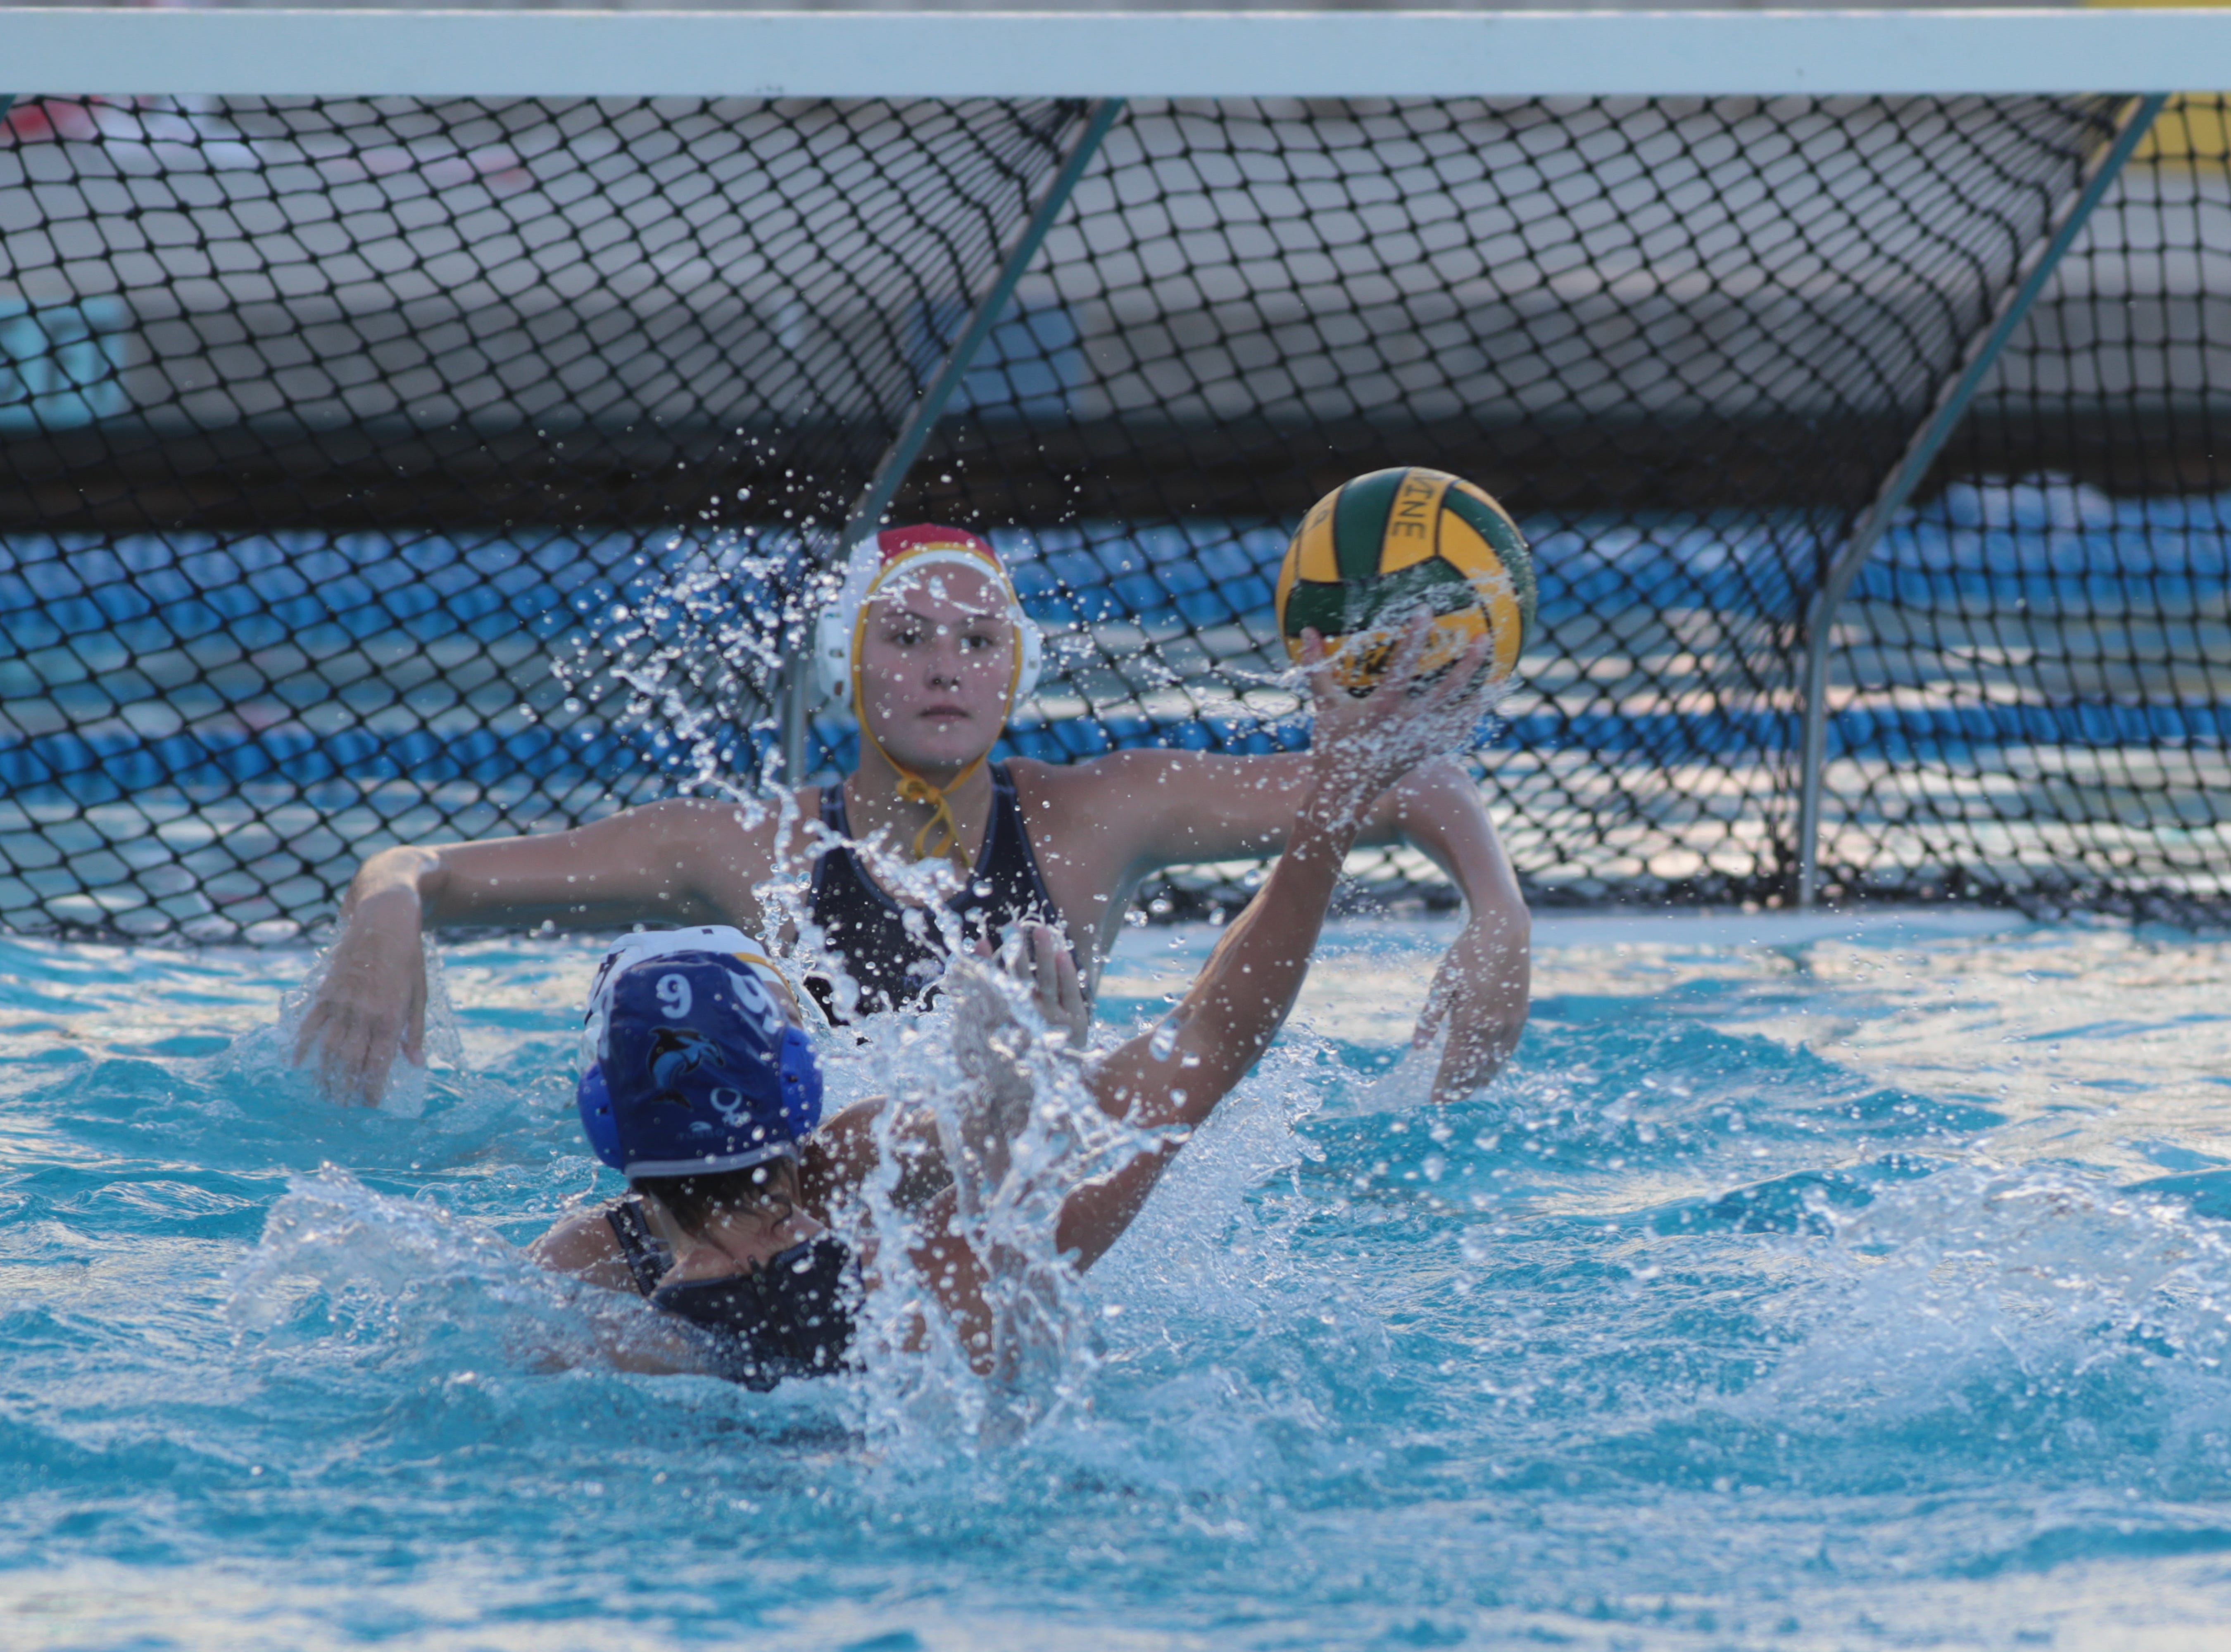 Annabelle Sherman blocks a goal for La Quinta in the CIF Southern Section Division 4 championships, Irvine, Calif., Saturday, February 16, 2019.